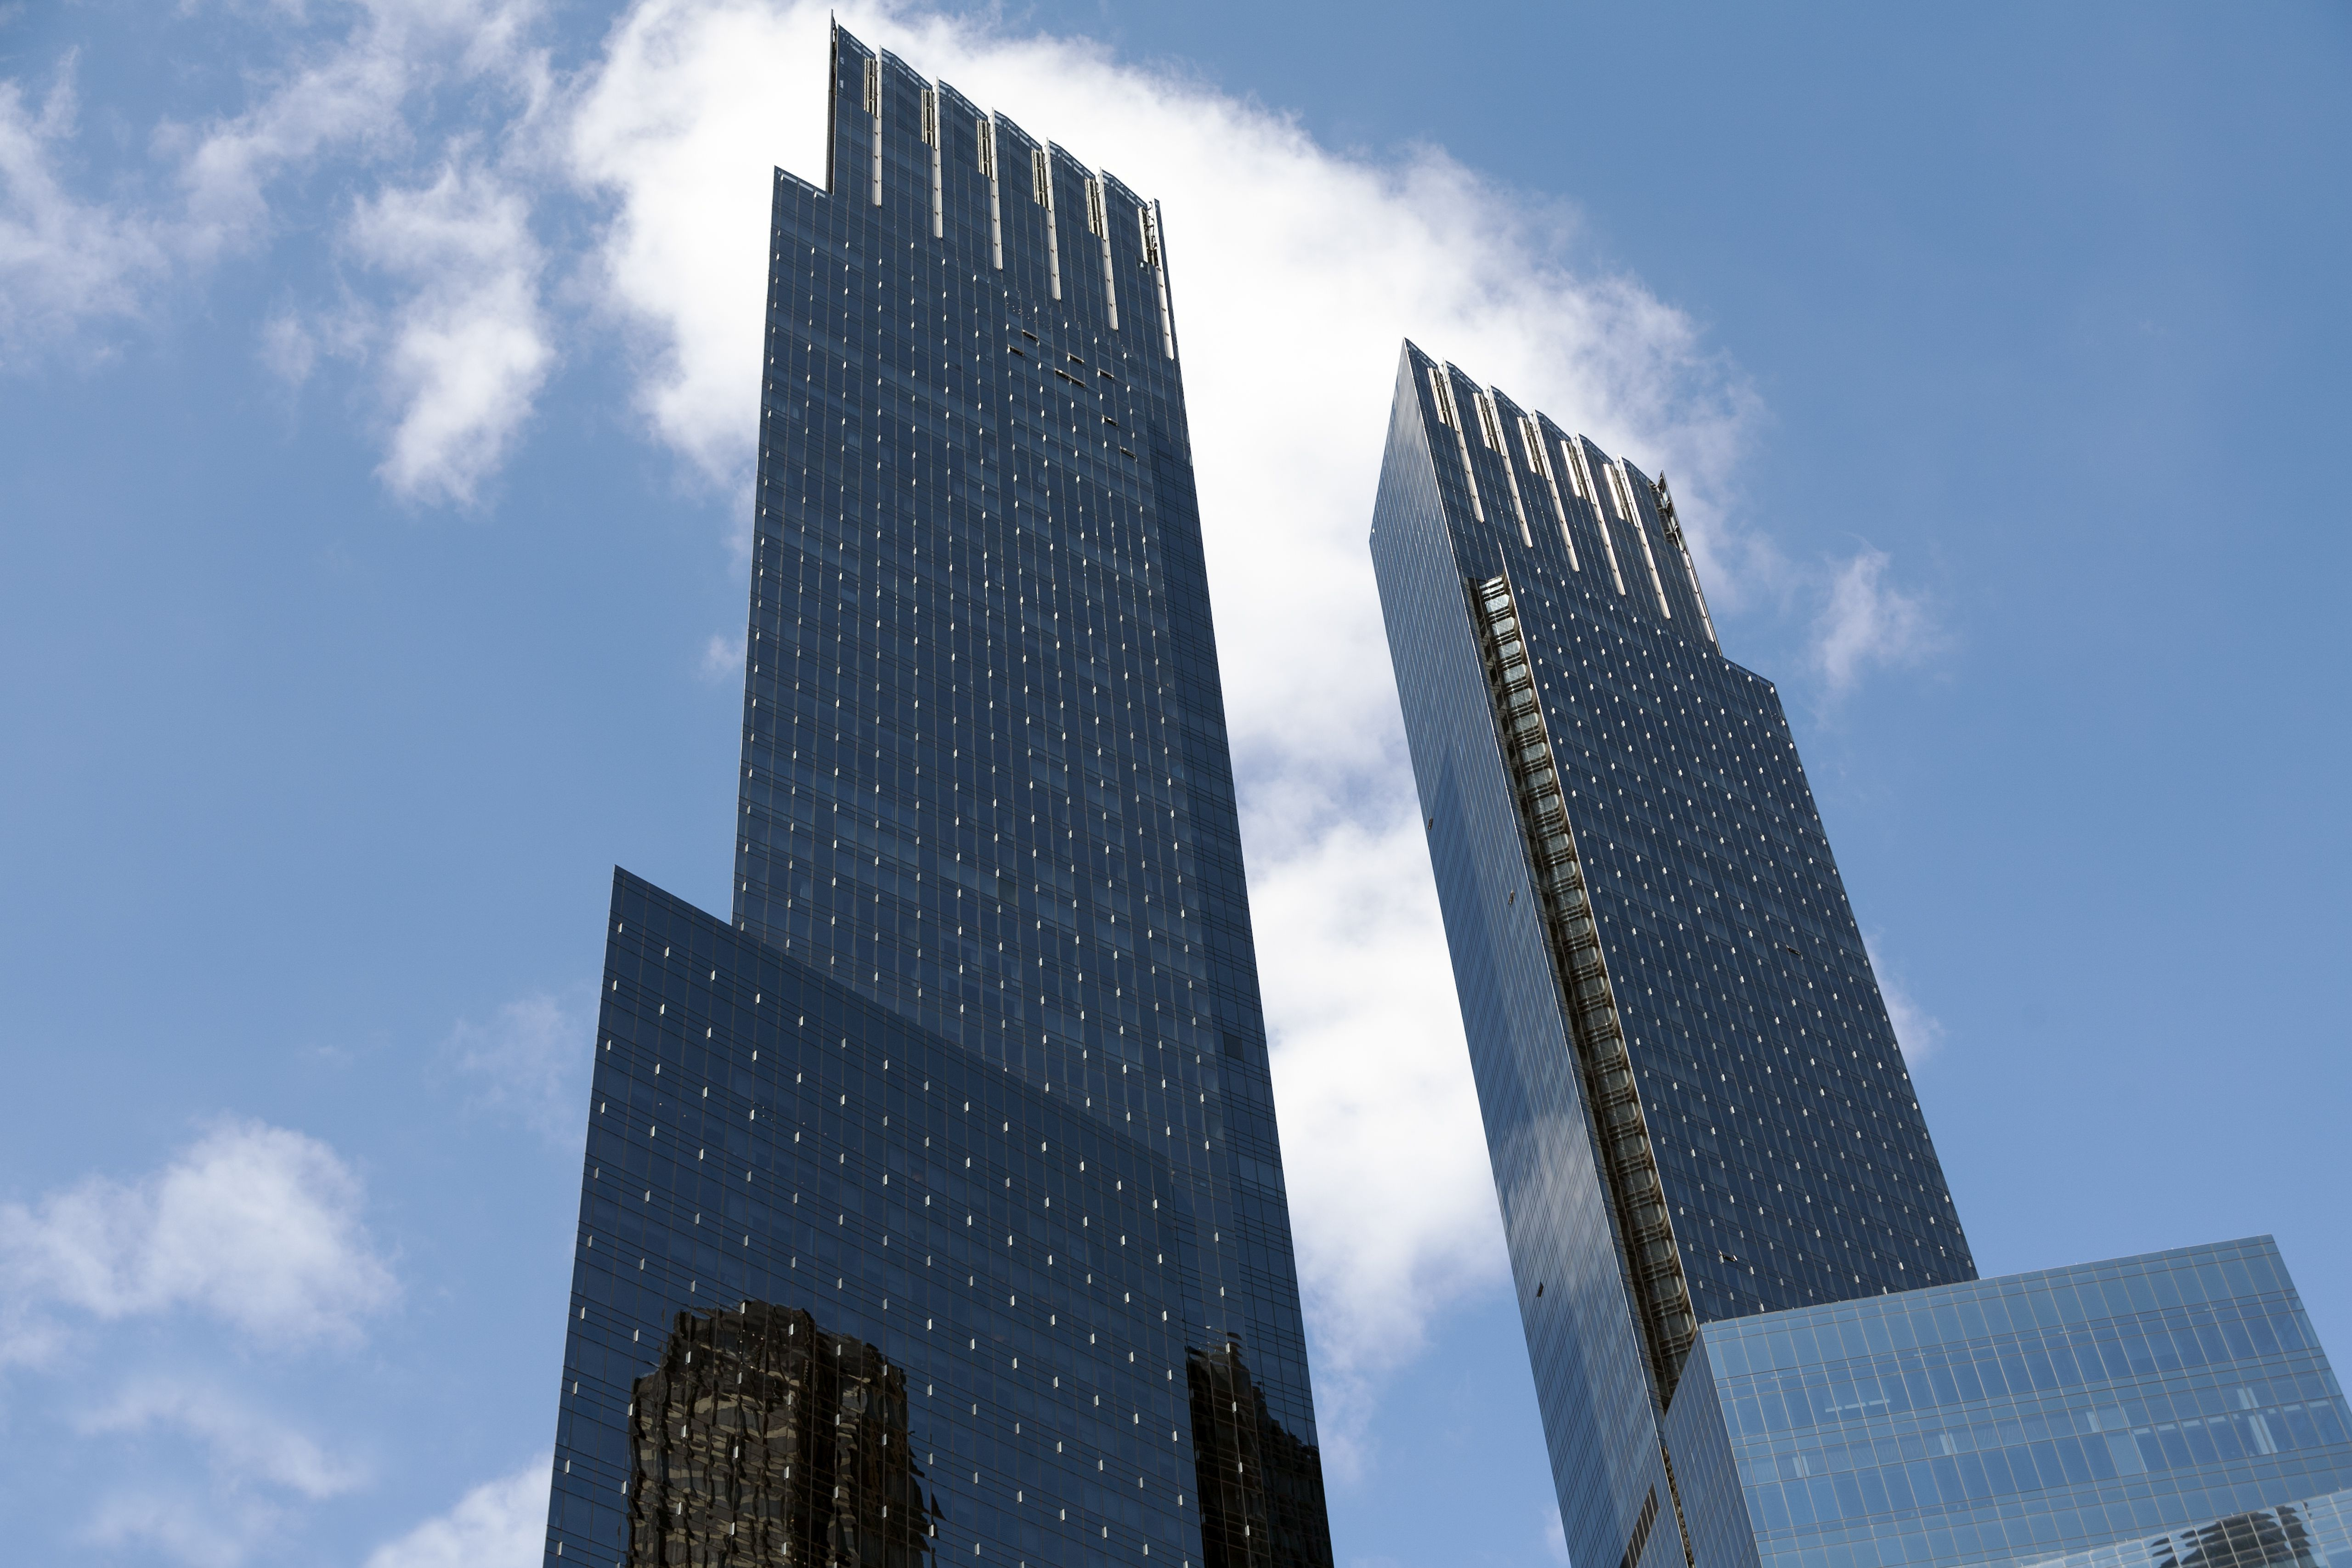 two rectangular skyscraper towers looking like large digital connectors at the top